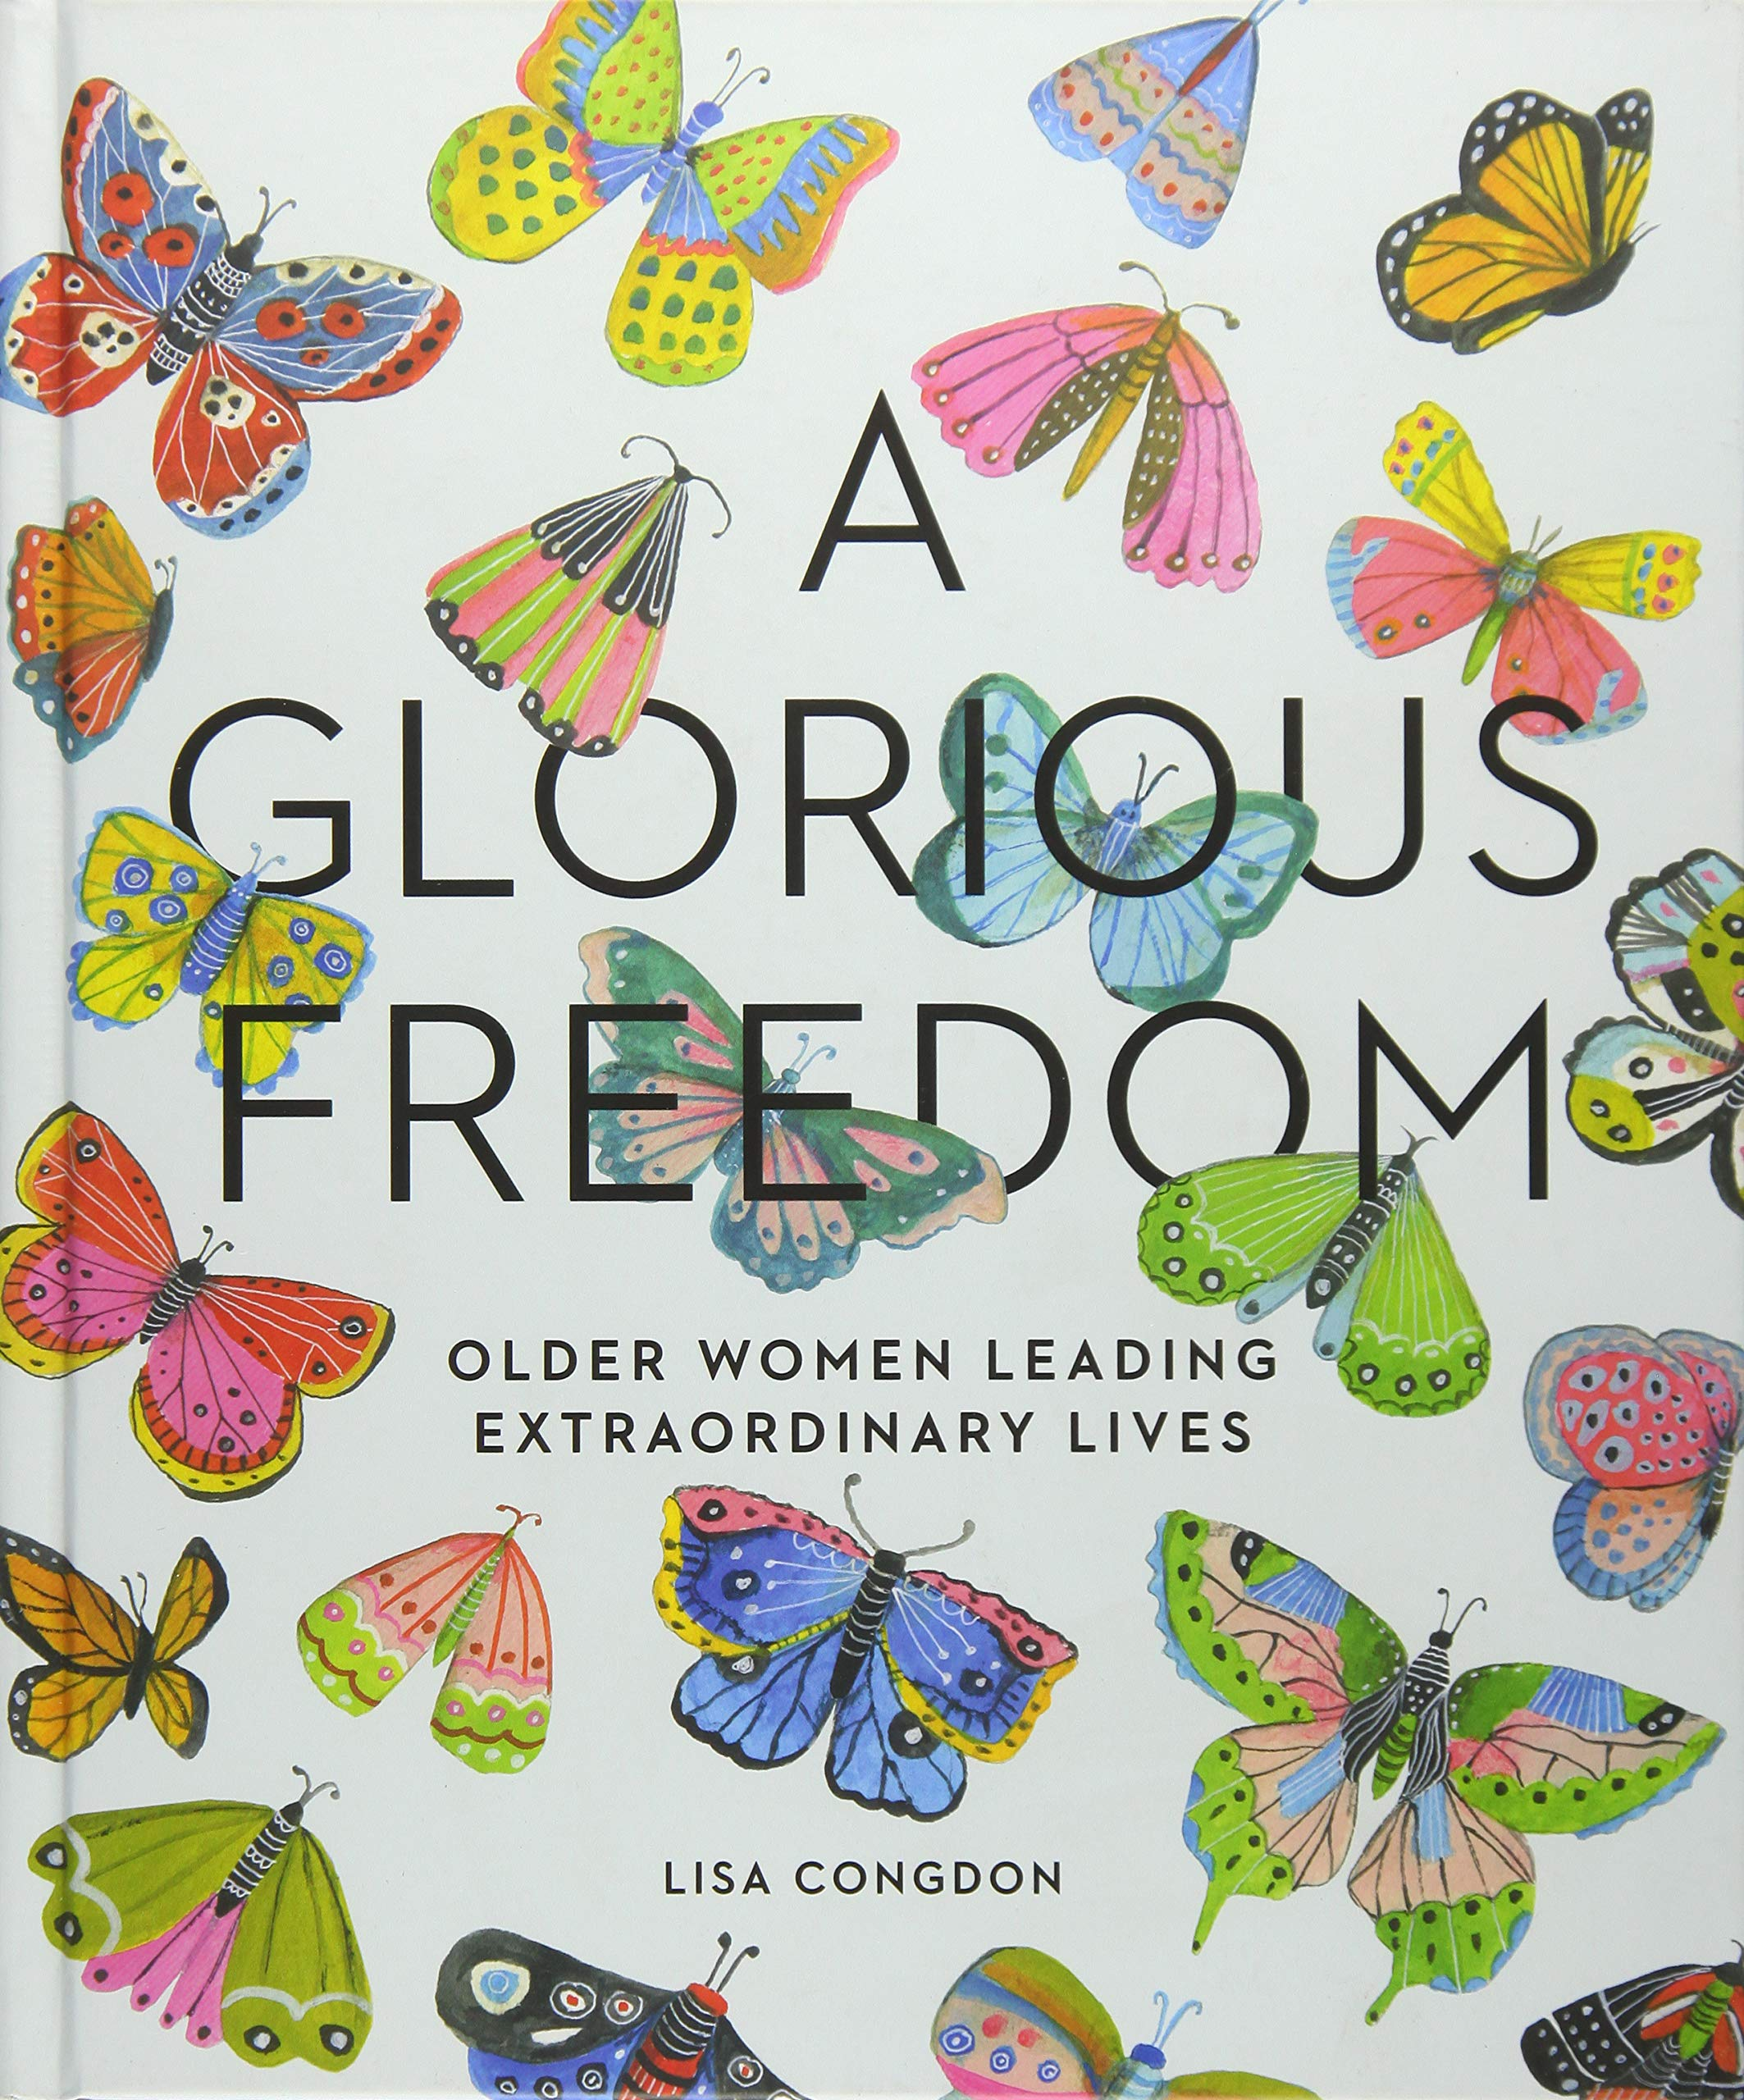 A Glorious Freedom: Older Women Leading Extraordinary Lives (Gifts for Grandmothers, Books for Middle Age, Inspiring Gifts for Older Women)